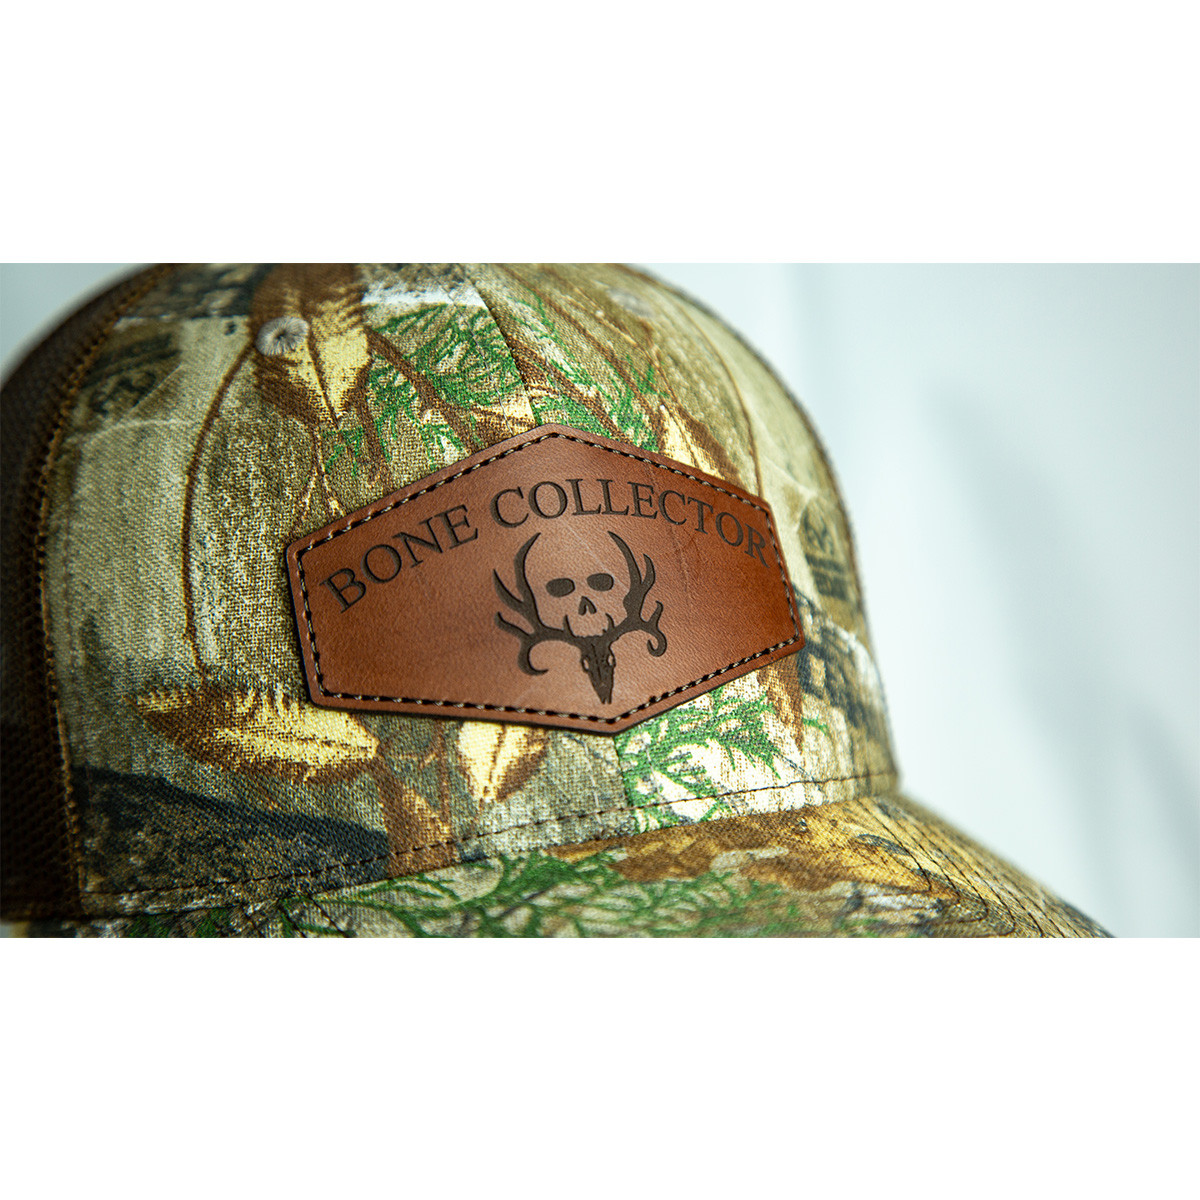 bone collector edge snapback leather hat close up